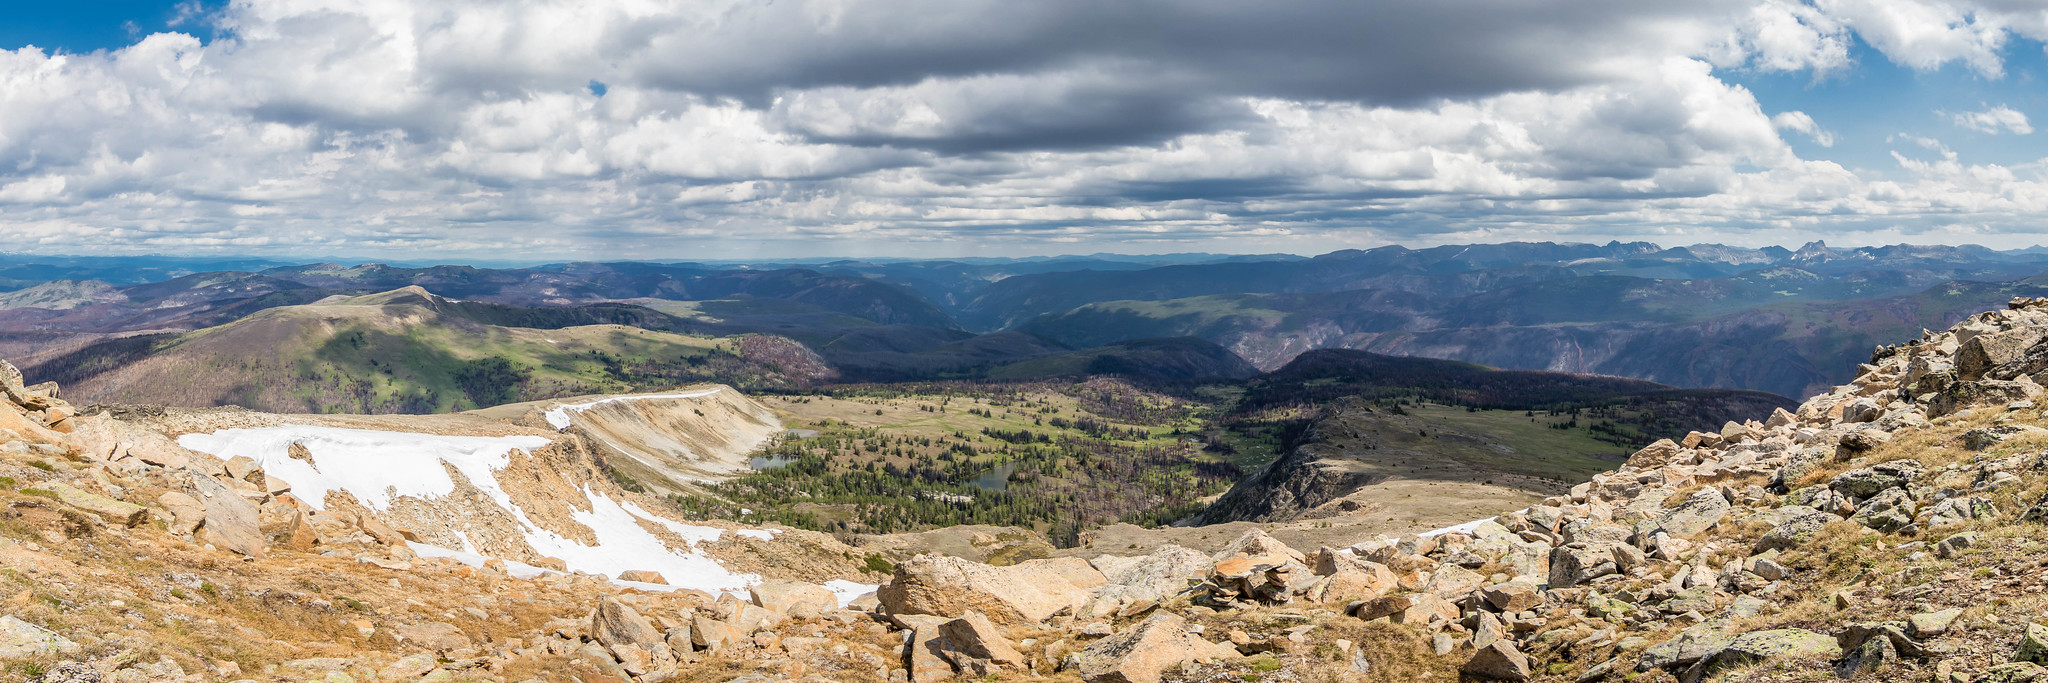 Northern panoramic view on Sheep Mountain 8274